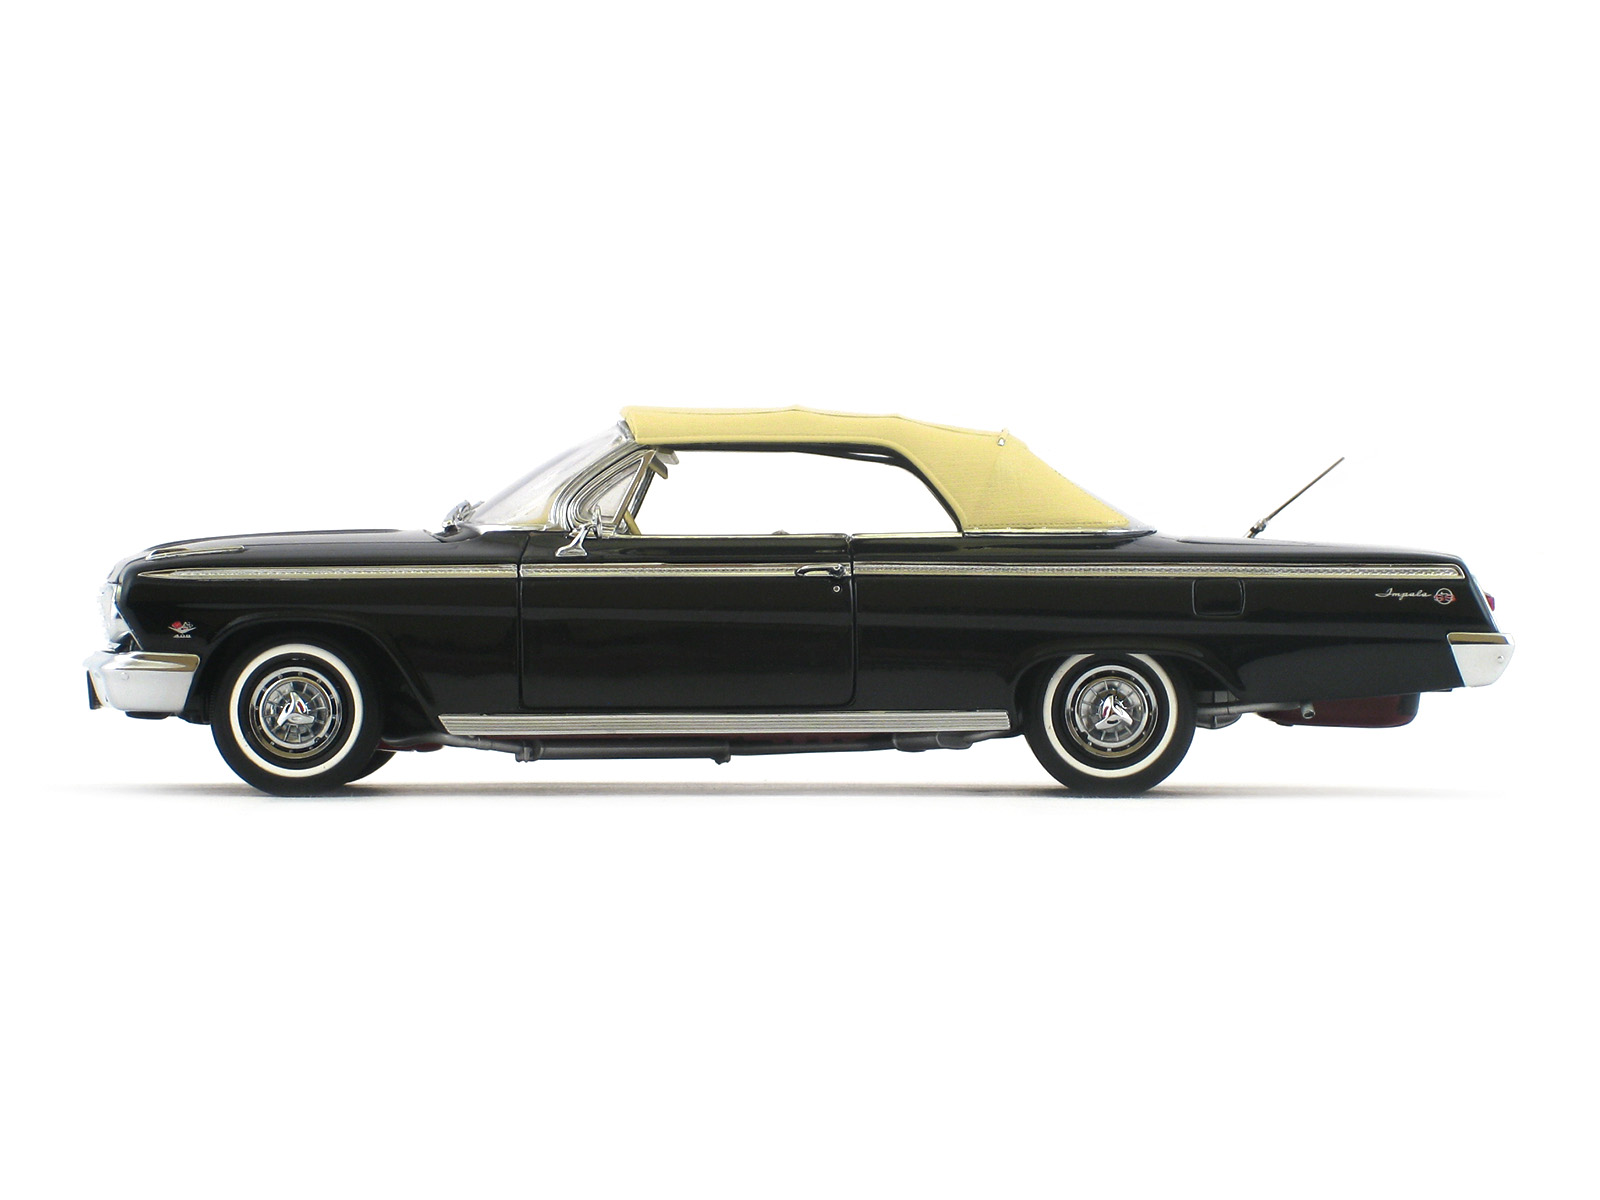 Convertible Ford F 150 >> 1962 Chevrolet Impala SS Convertible West Coast Precision Diecast